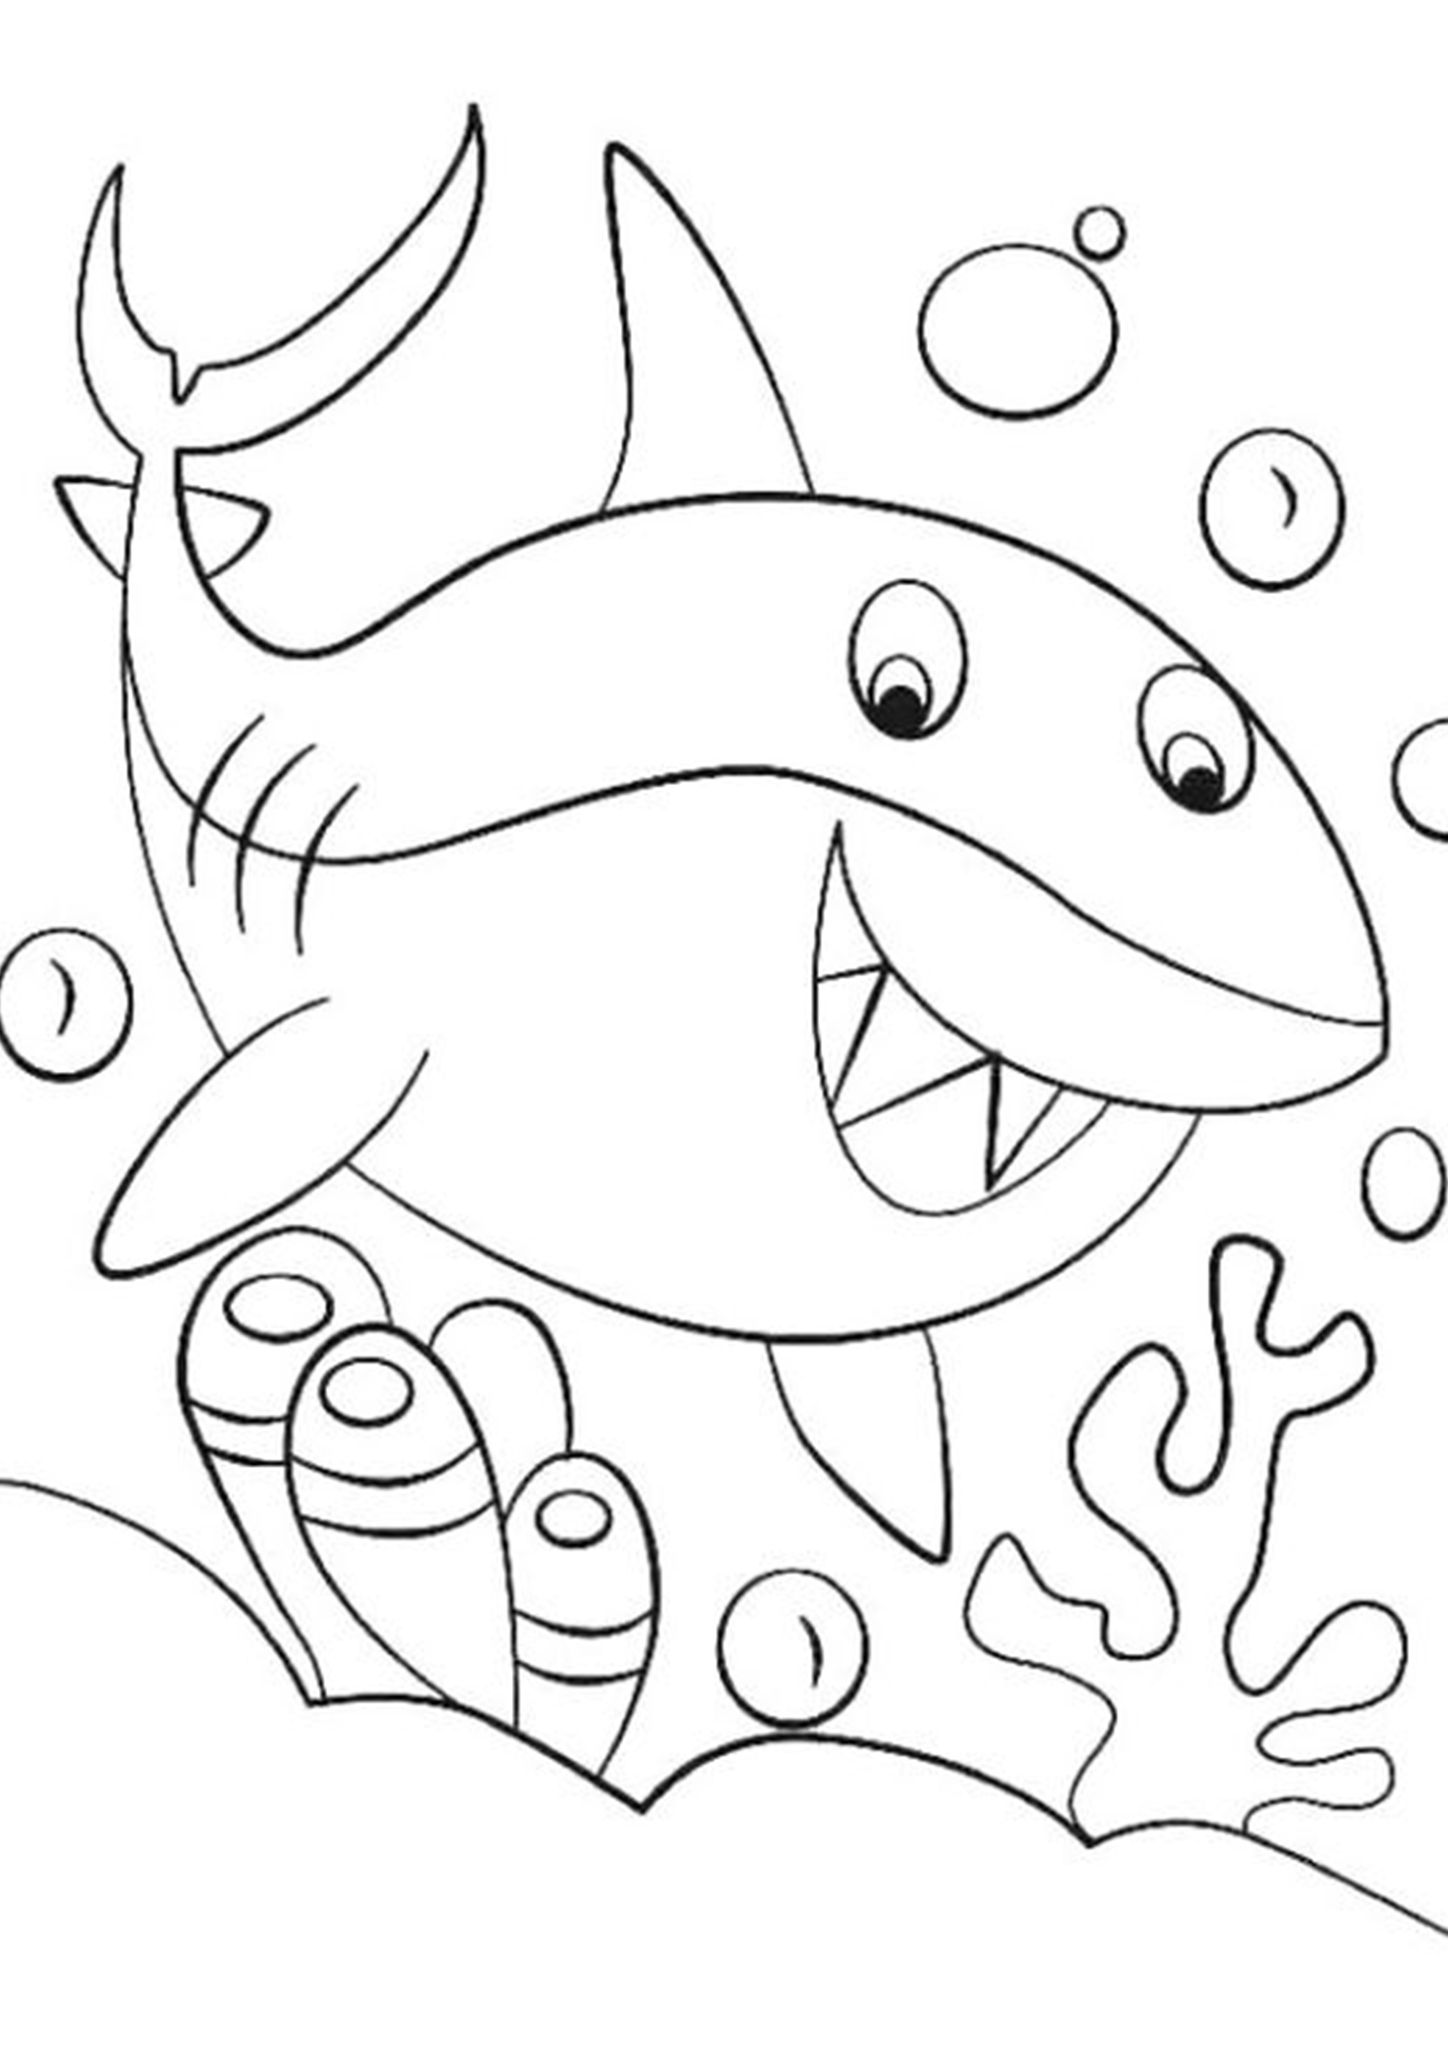 funny shark coloring pages free easy to print shark coloring pages in 2020 shark pages coloring shark funny